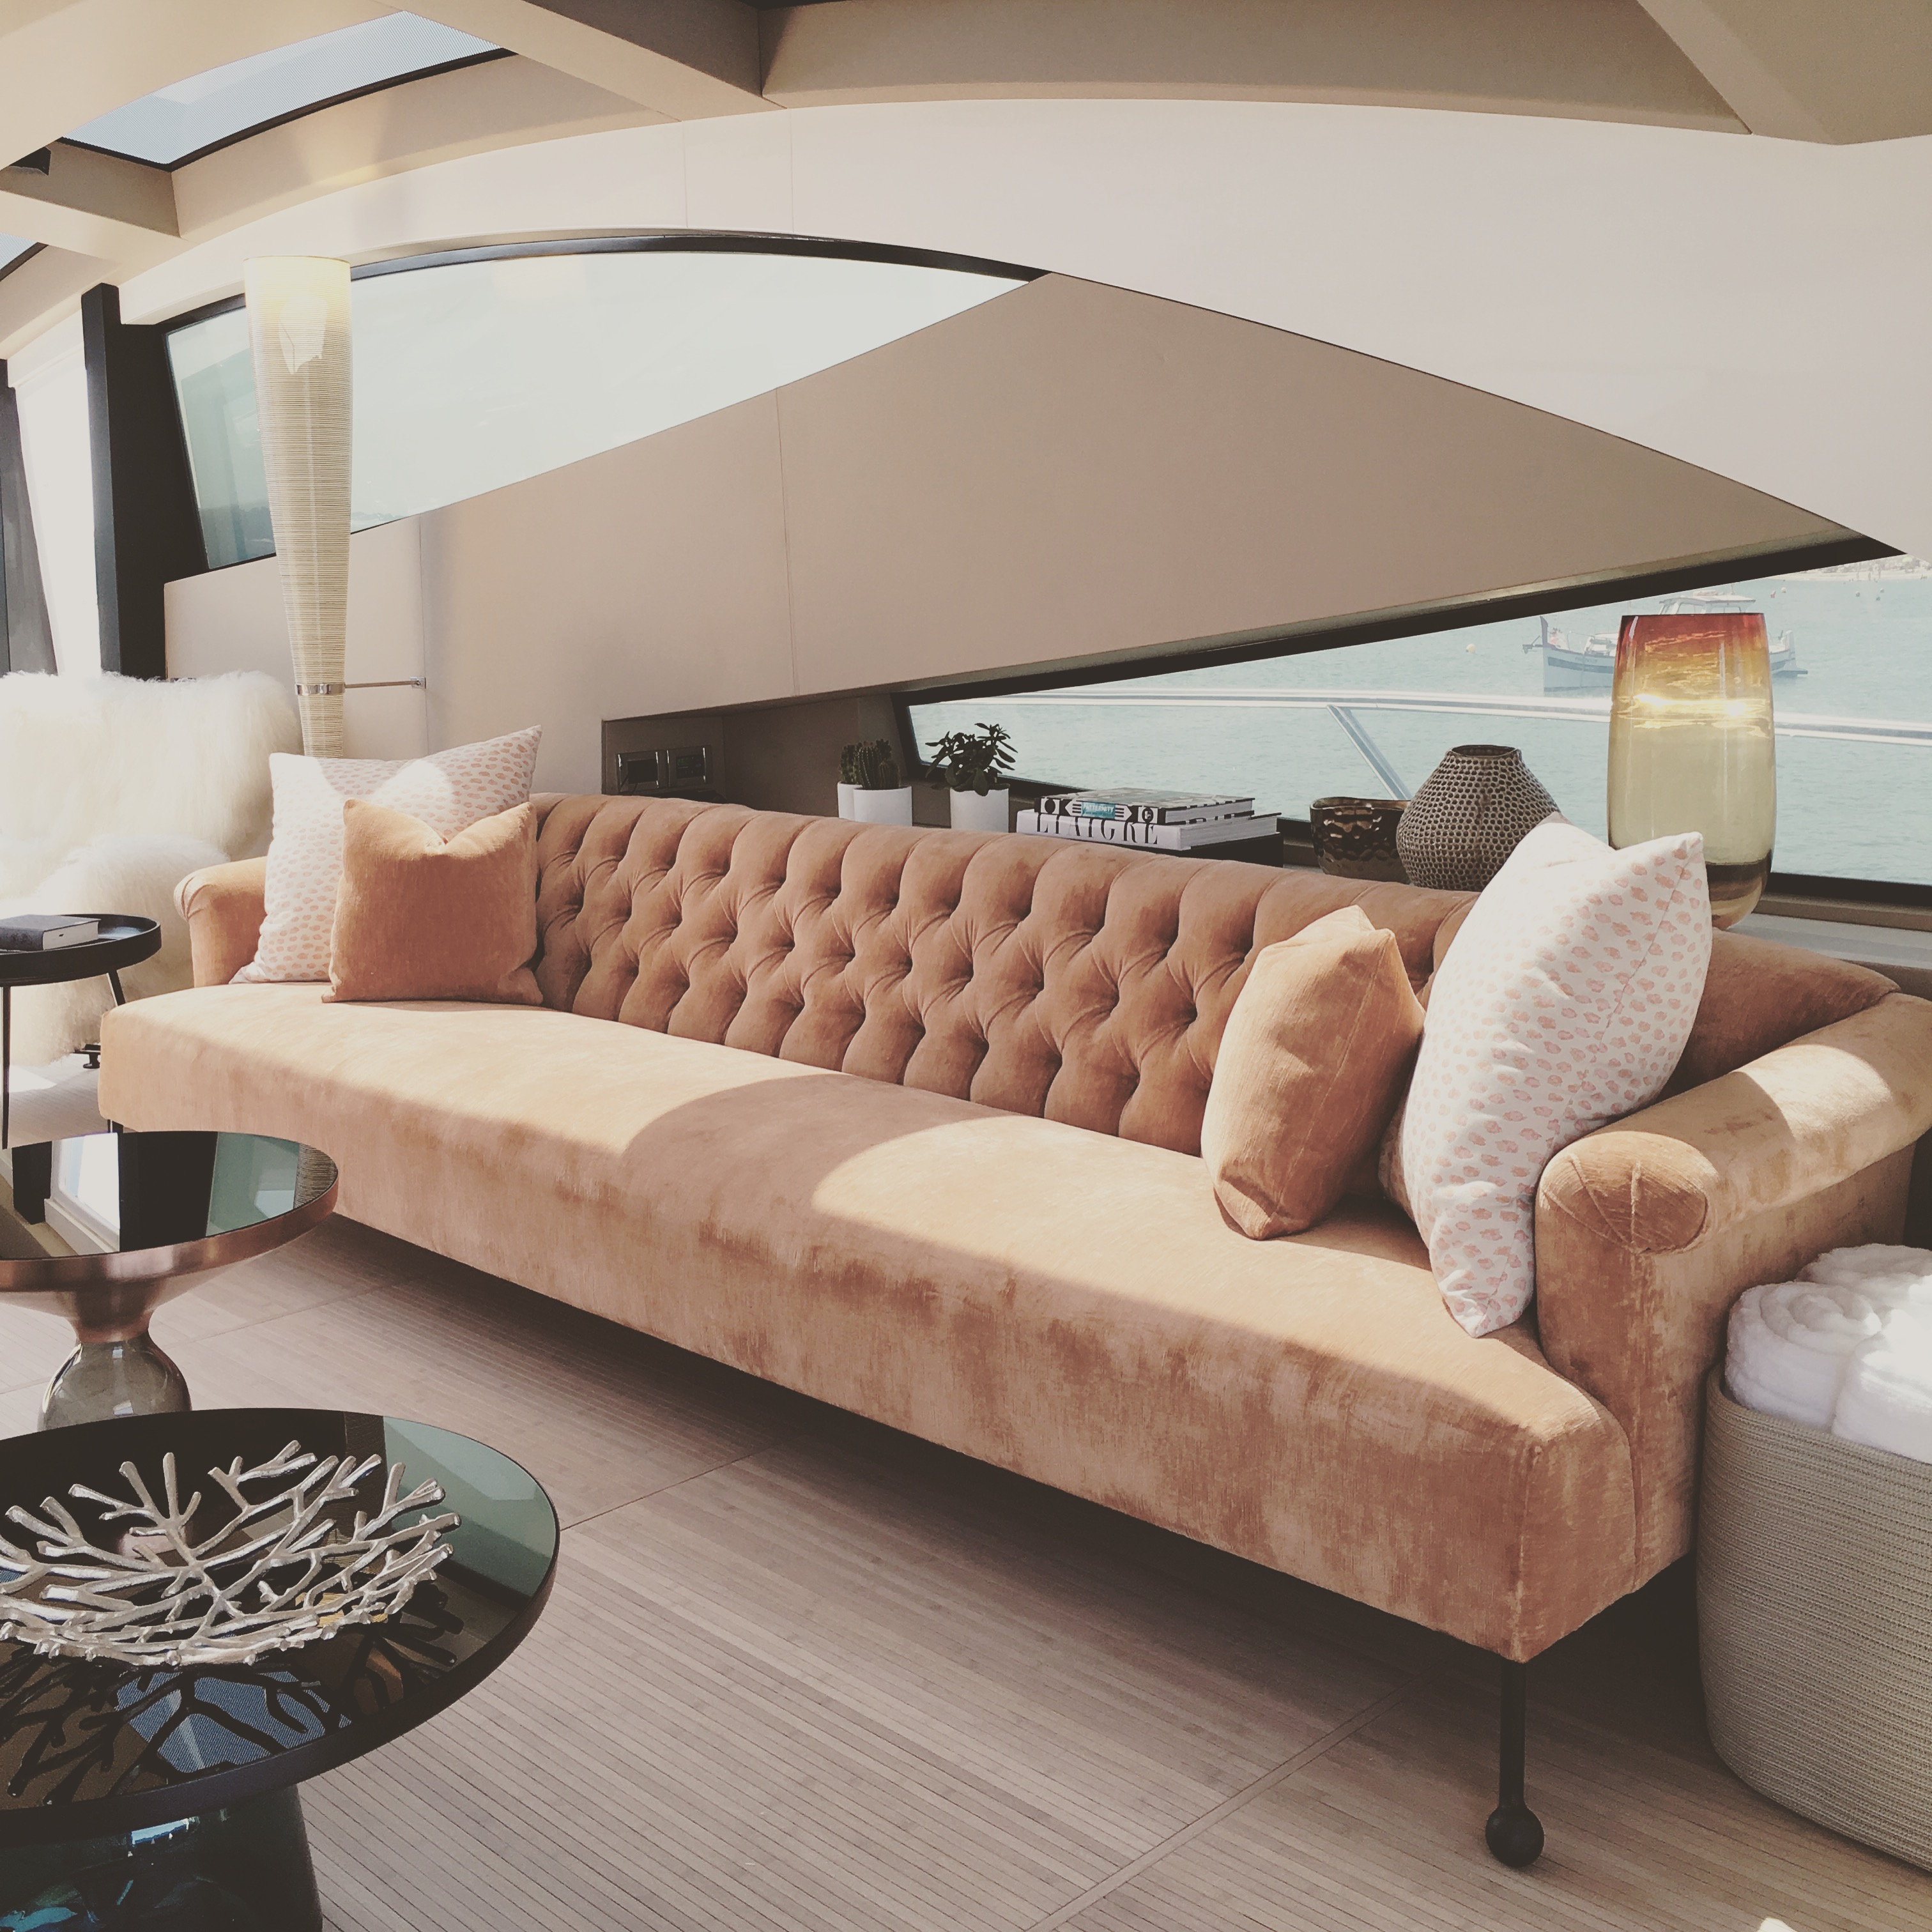 Ibiza Yacht by Light on White - Alizee Brion - Top Miami Interior Design Firms - best interior designers miami - miami interior design - luxury interiors - yacht interior design - yacht interiors - yacht living rooms